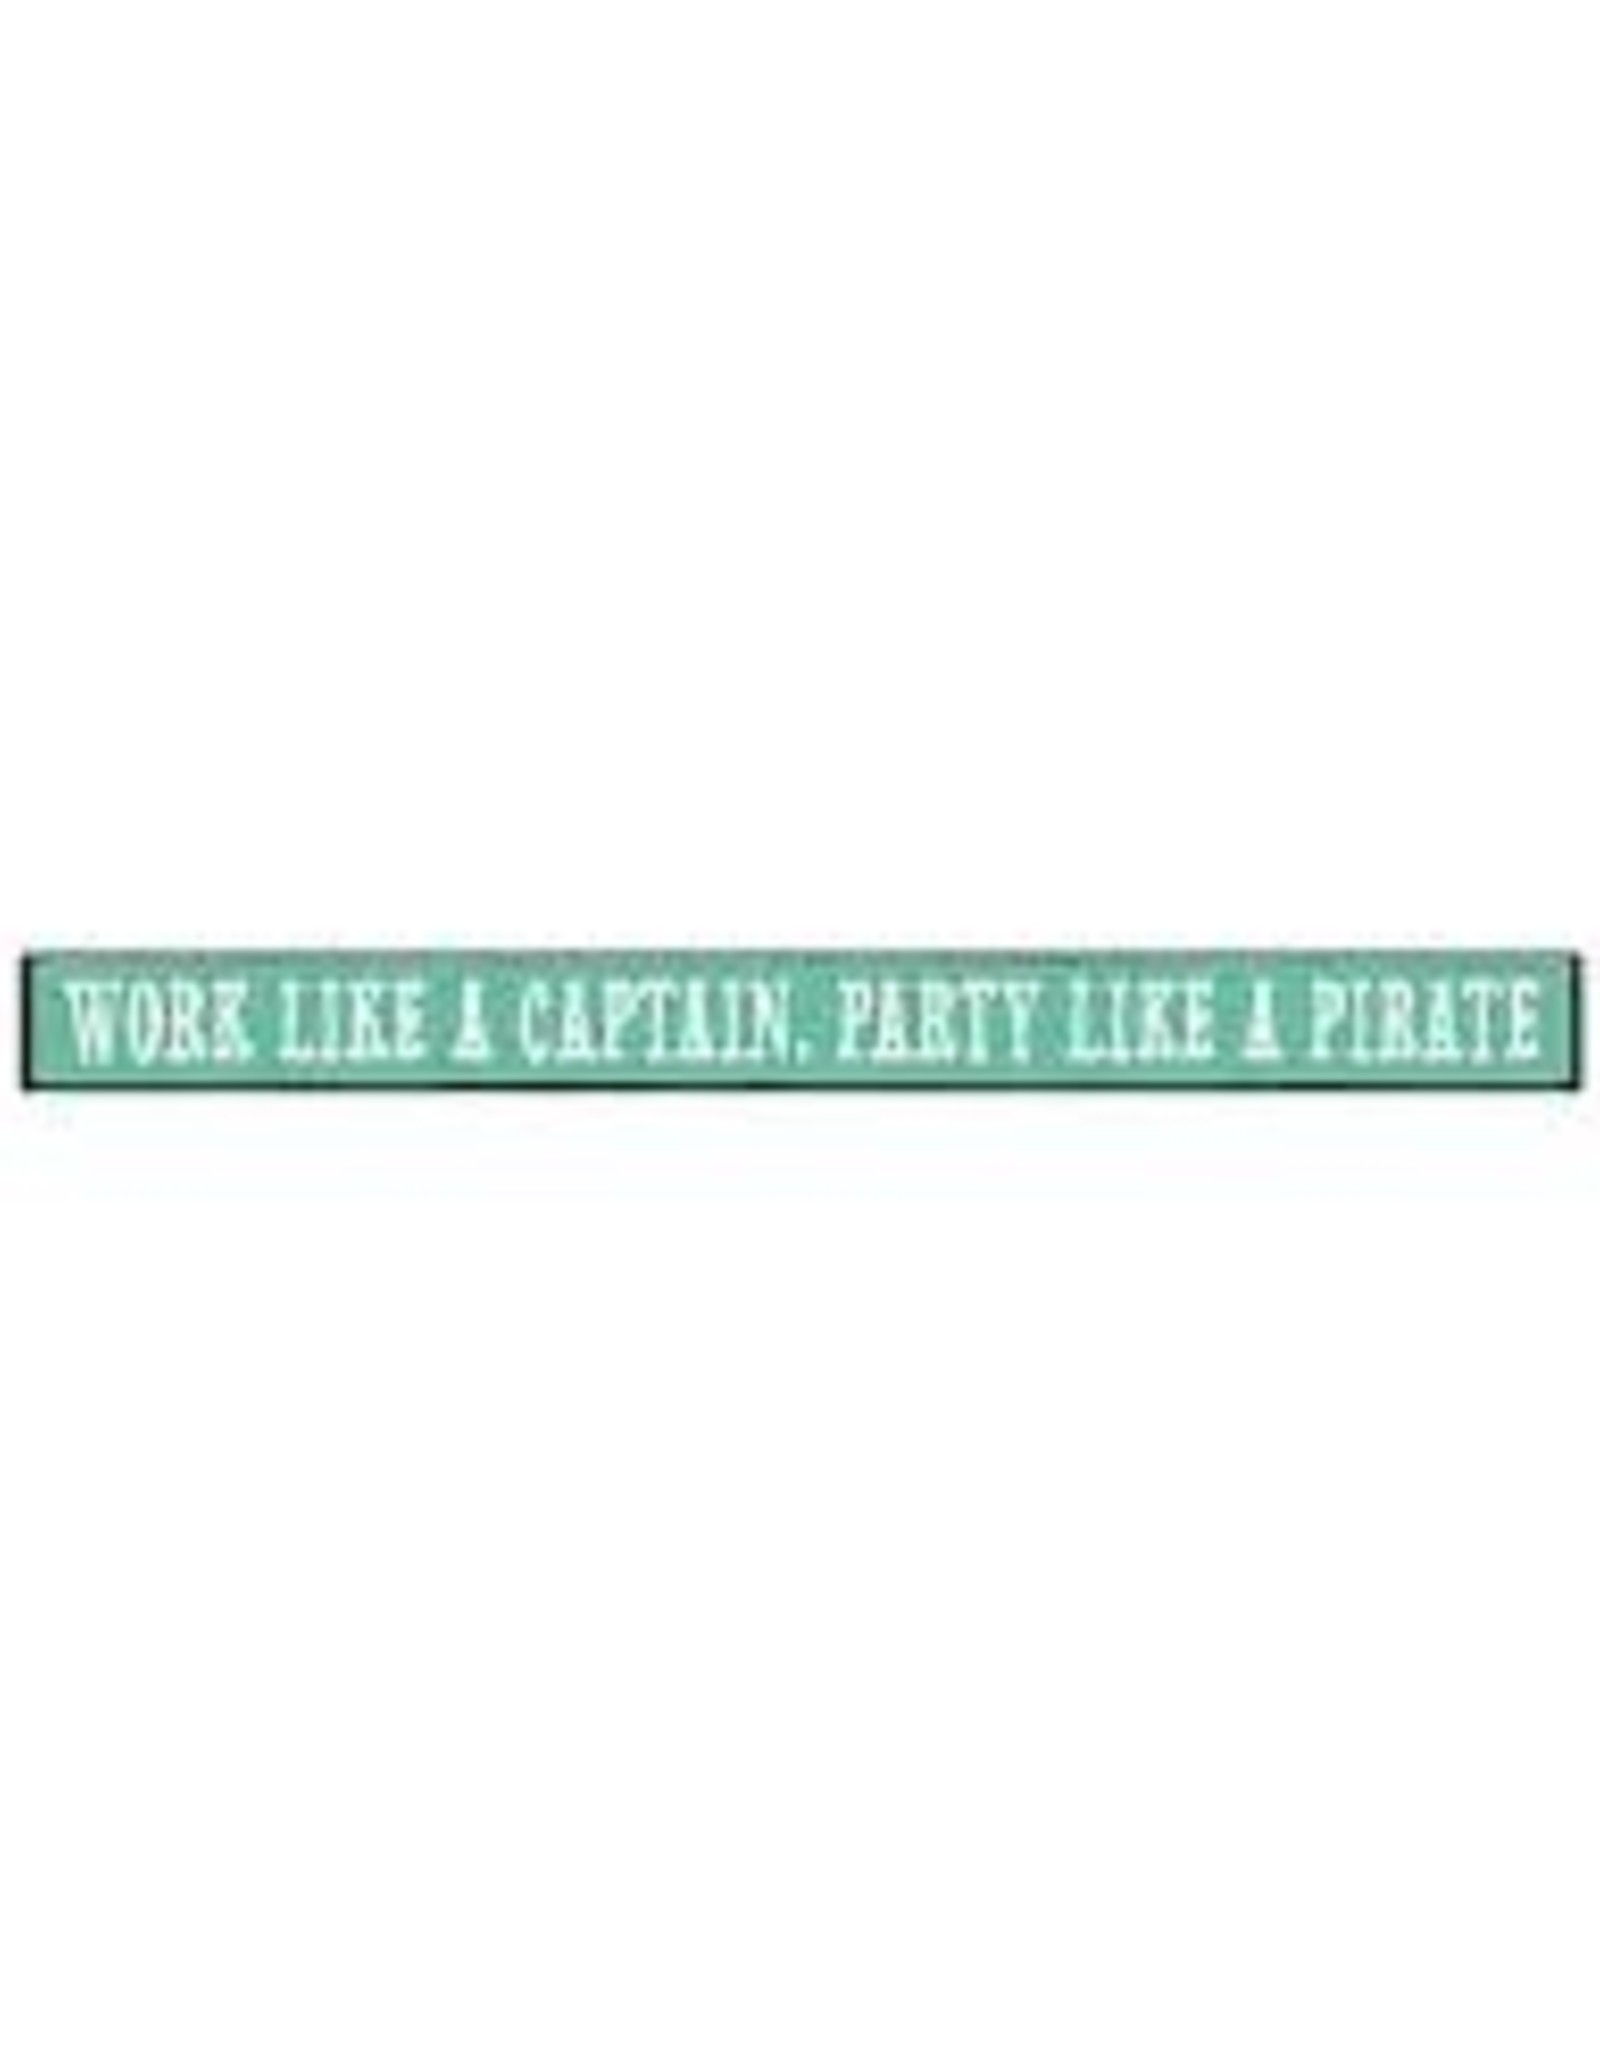 MY WORD WORK LIKE A CAPTAIN, PARTY LIKE A PIRATE WOODEN SIGN